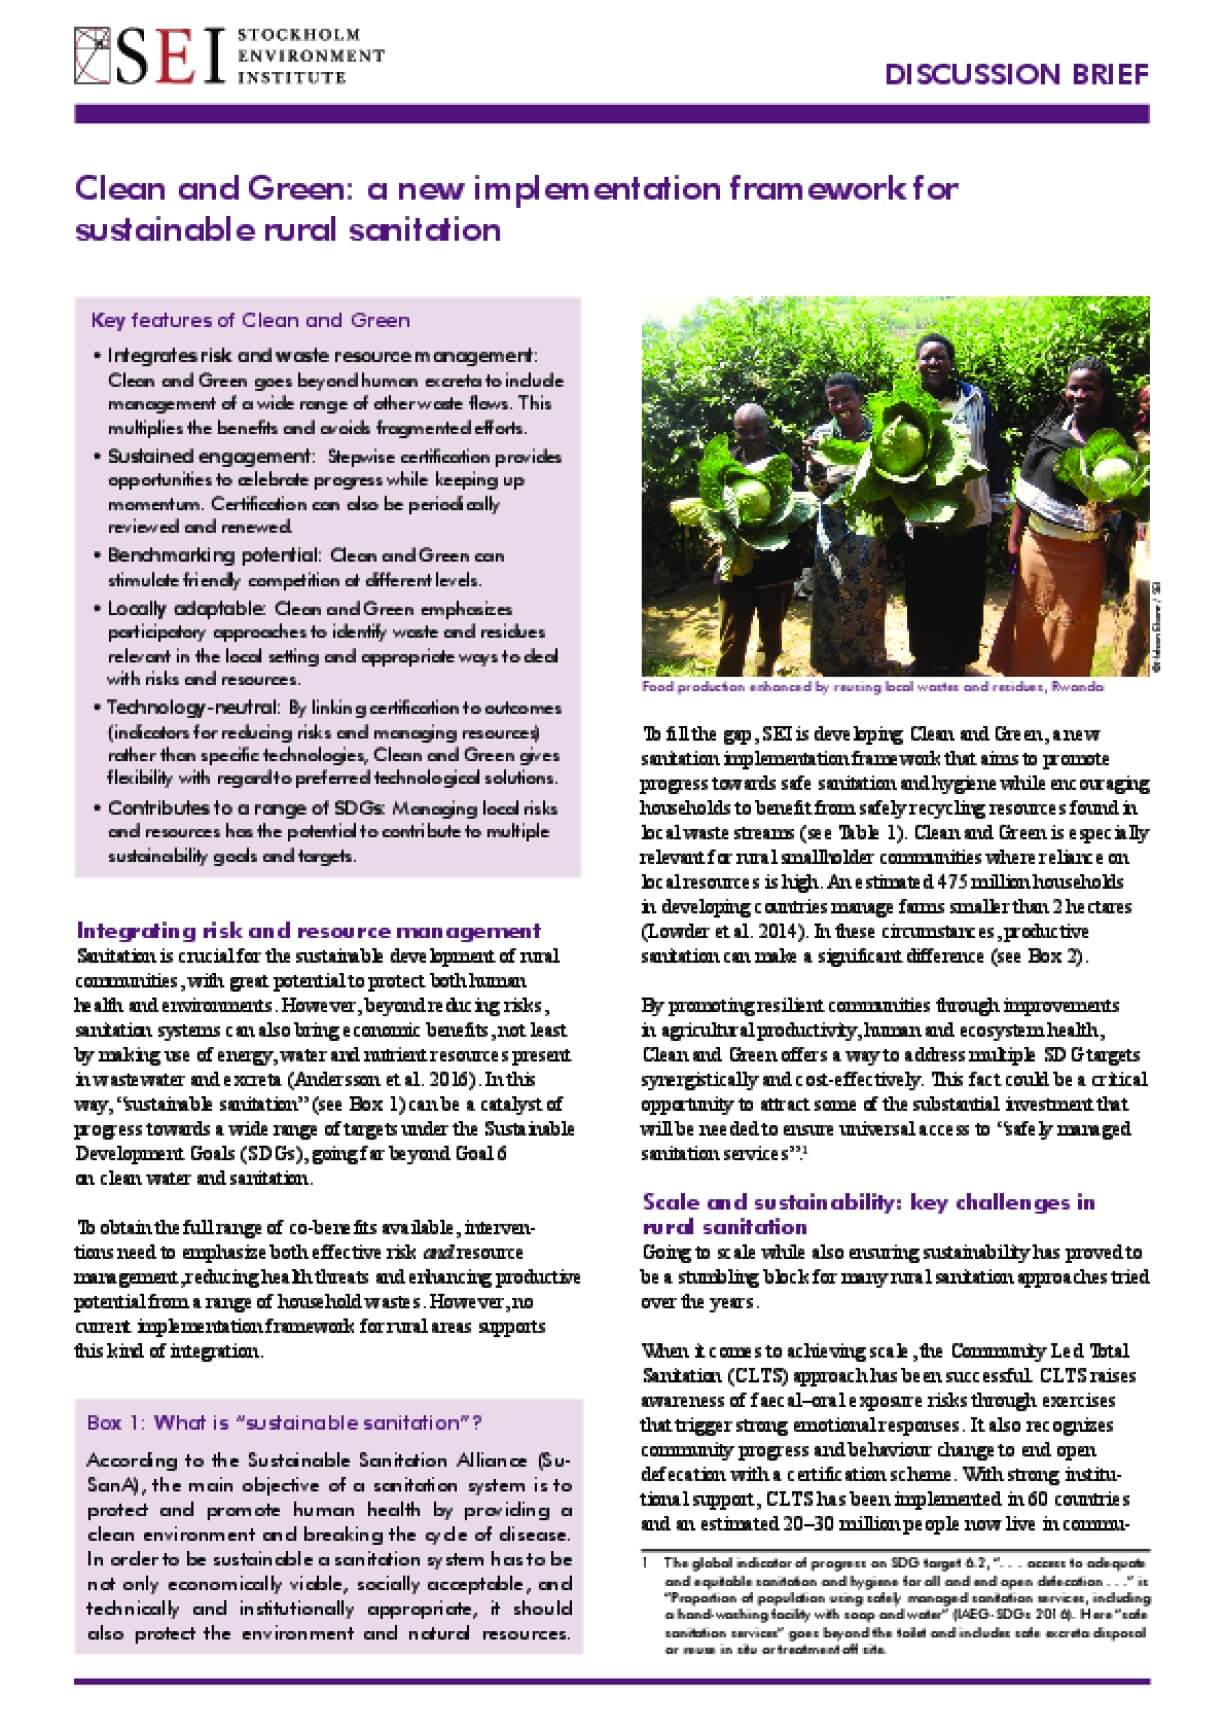 Clean and Green: A New Implementation Framework for Rural Sustainable Sanitation